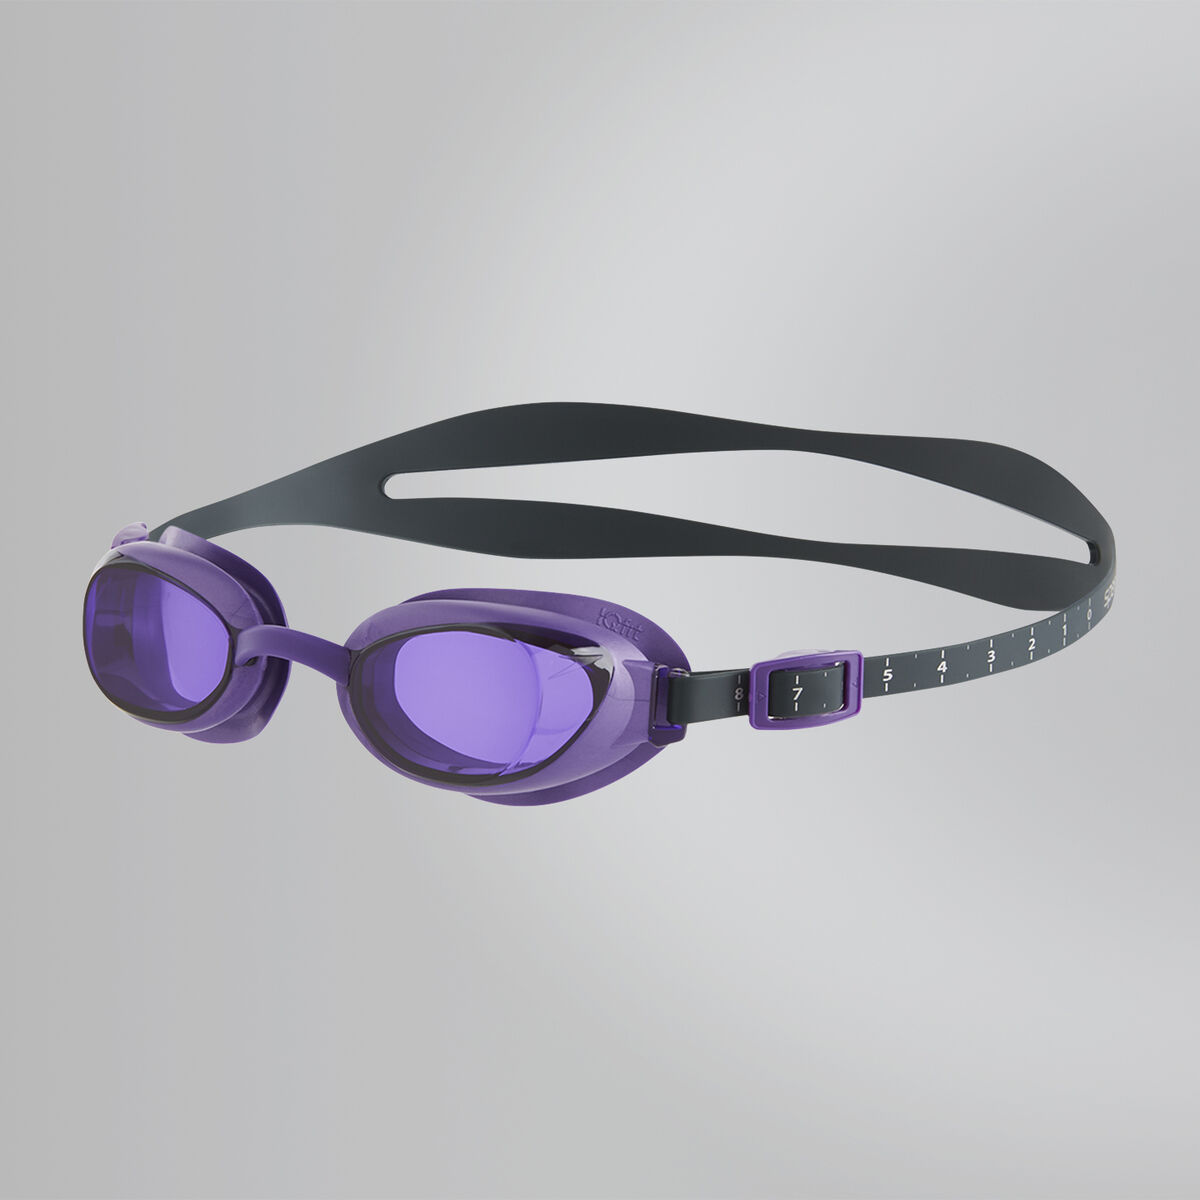 Aquapure Optical Female Goggle